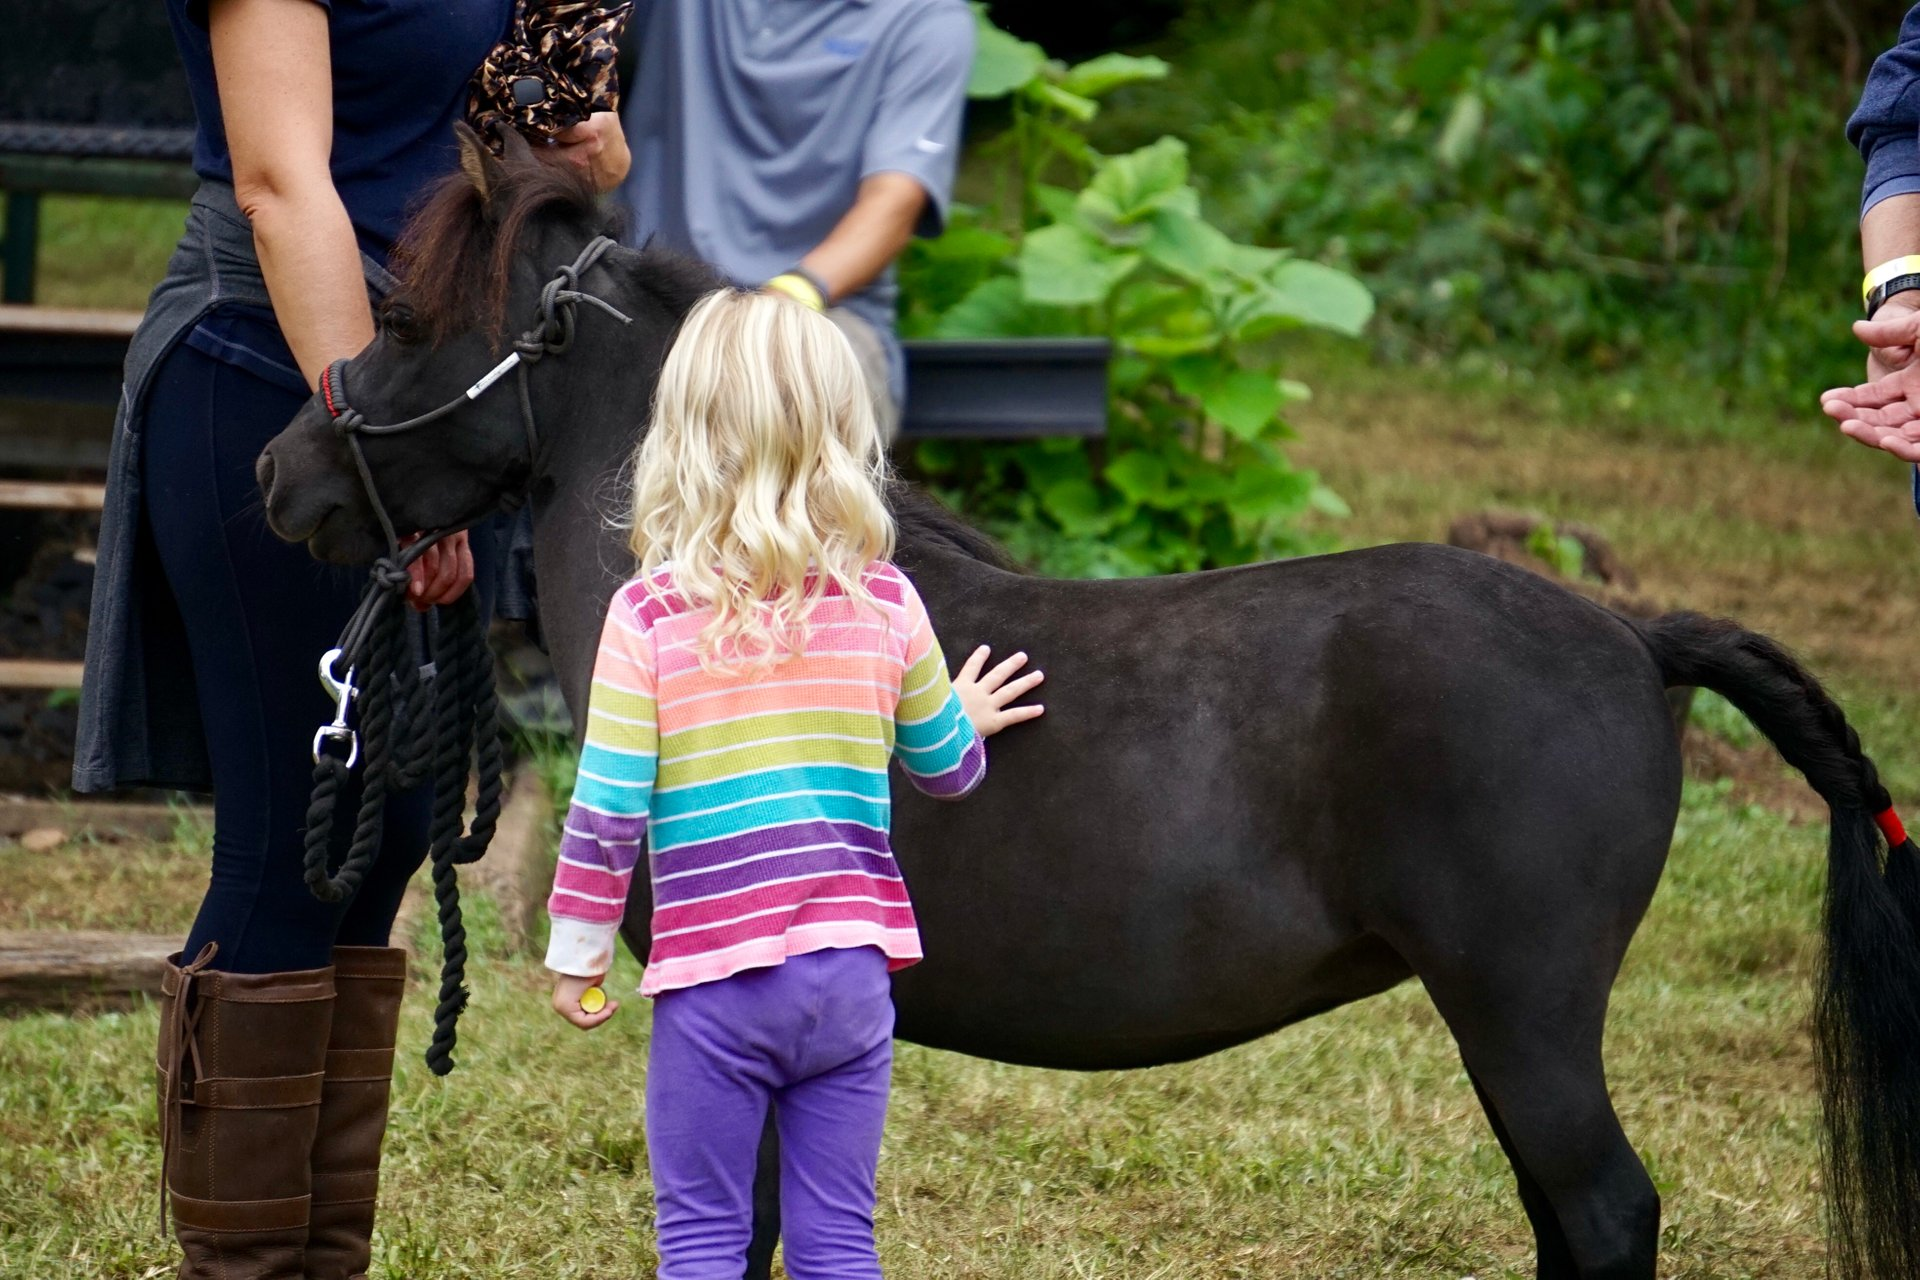 A little girl pets a black miniature pony at the Bluemont Fair 2020